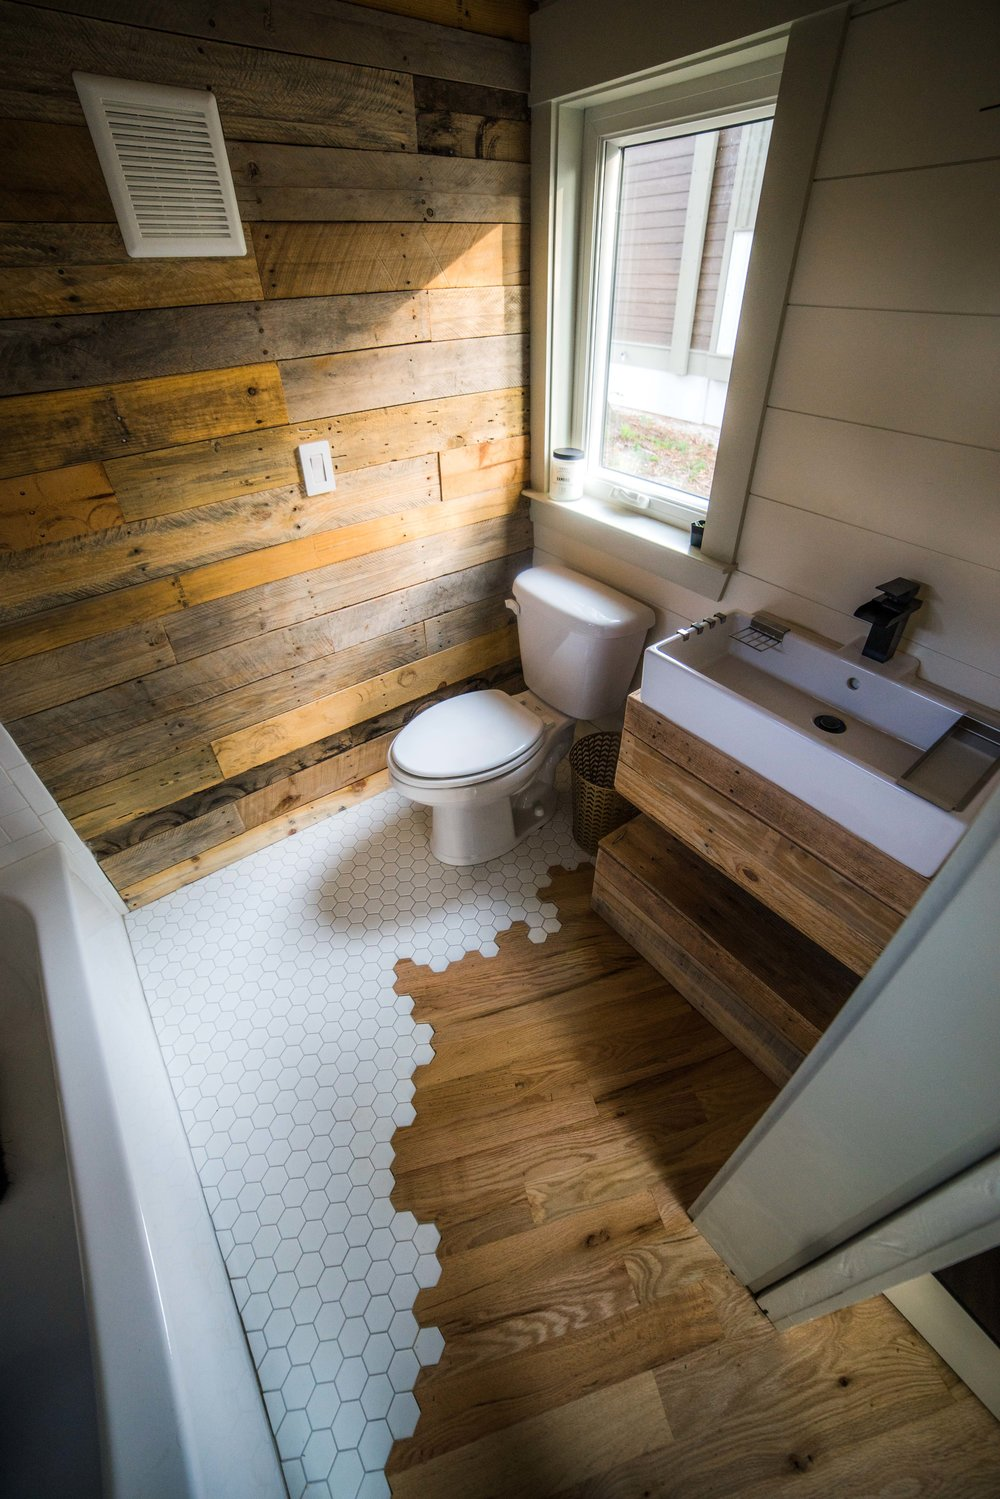 TINY HOUSE TOWN: The Legacy From Wood & Heart Building Co on Contemporary:kkgewzoz5M4= Small Bathroom Ideas  id=46118